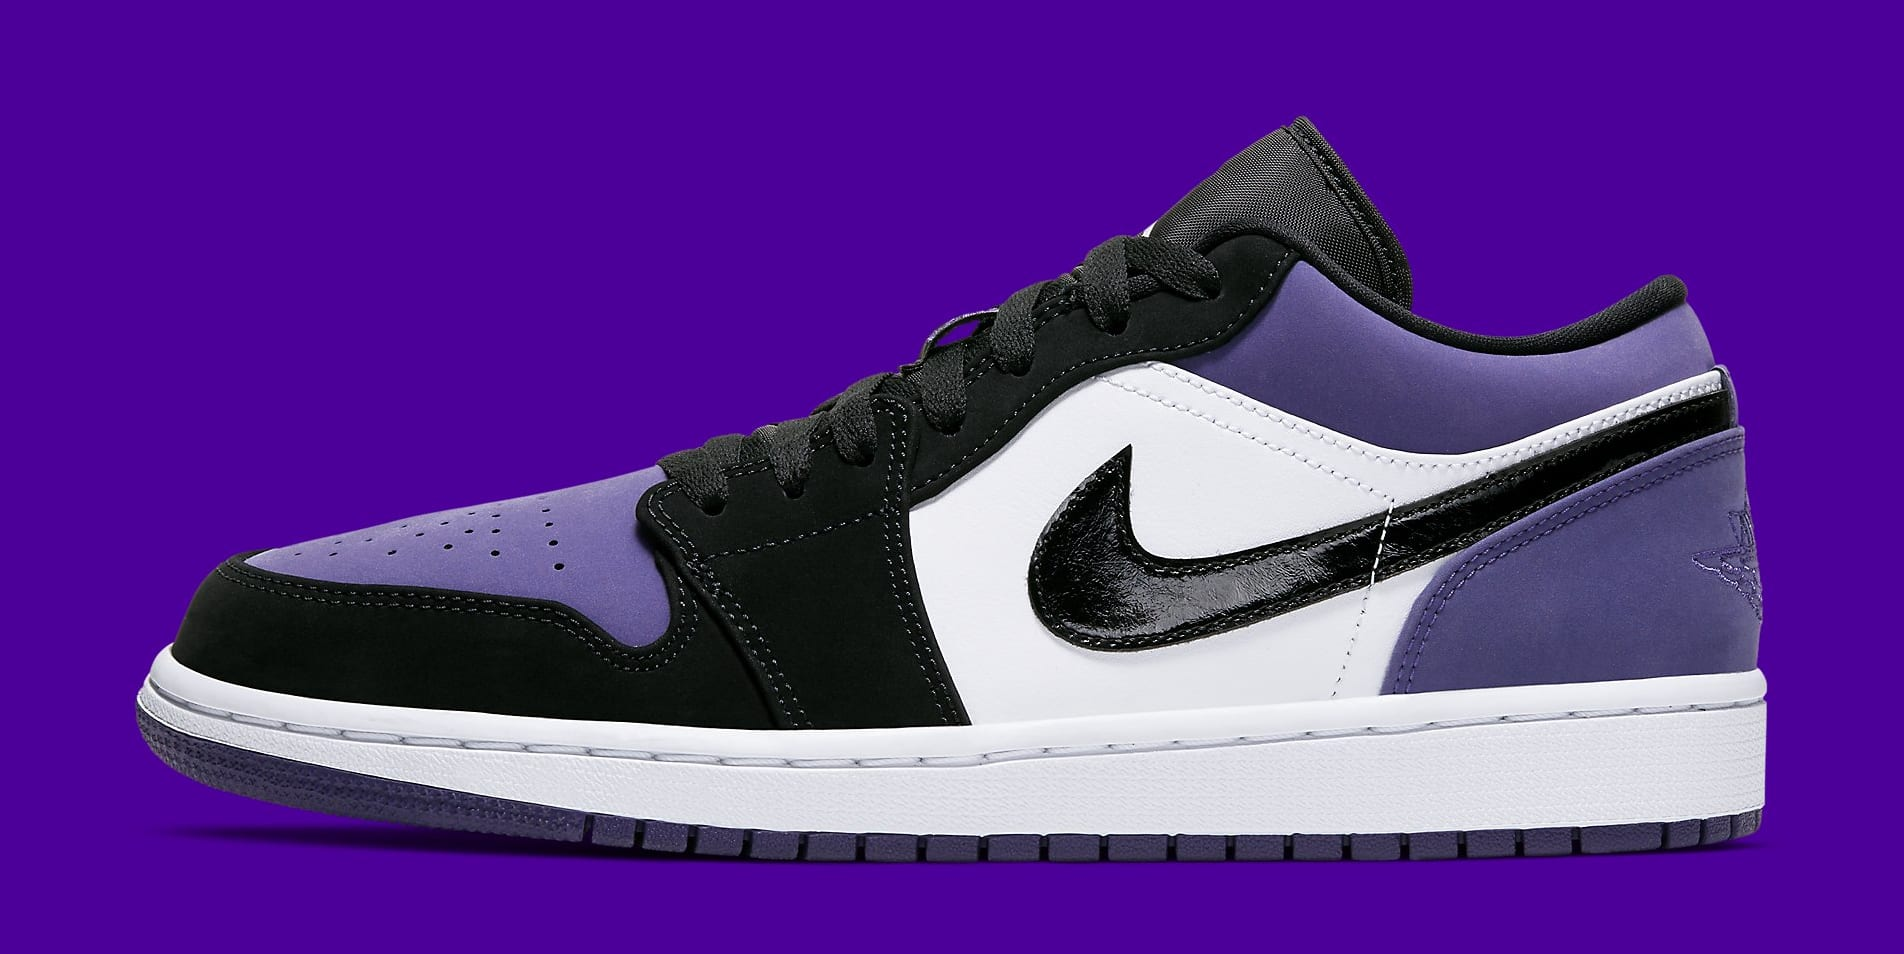 air-jordan-1-low-court-purple-553558-125-lateral